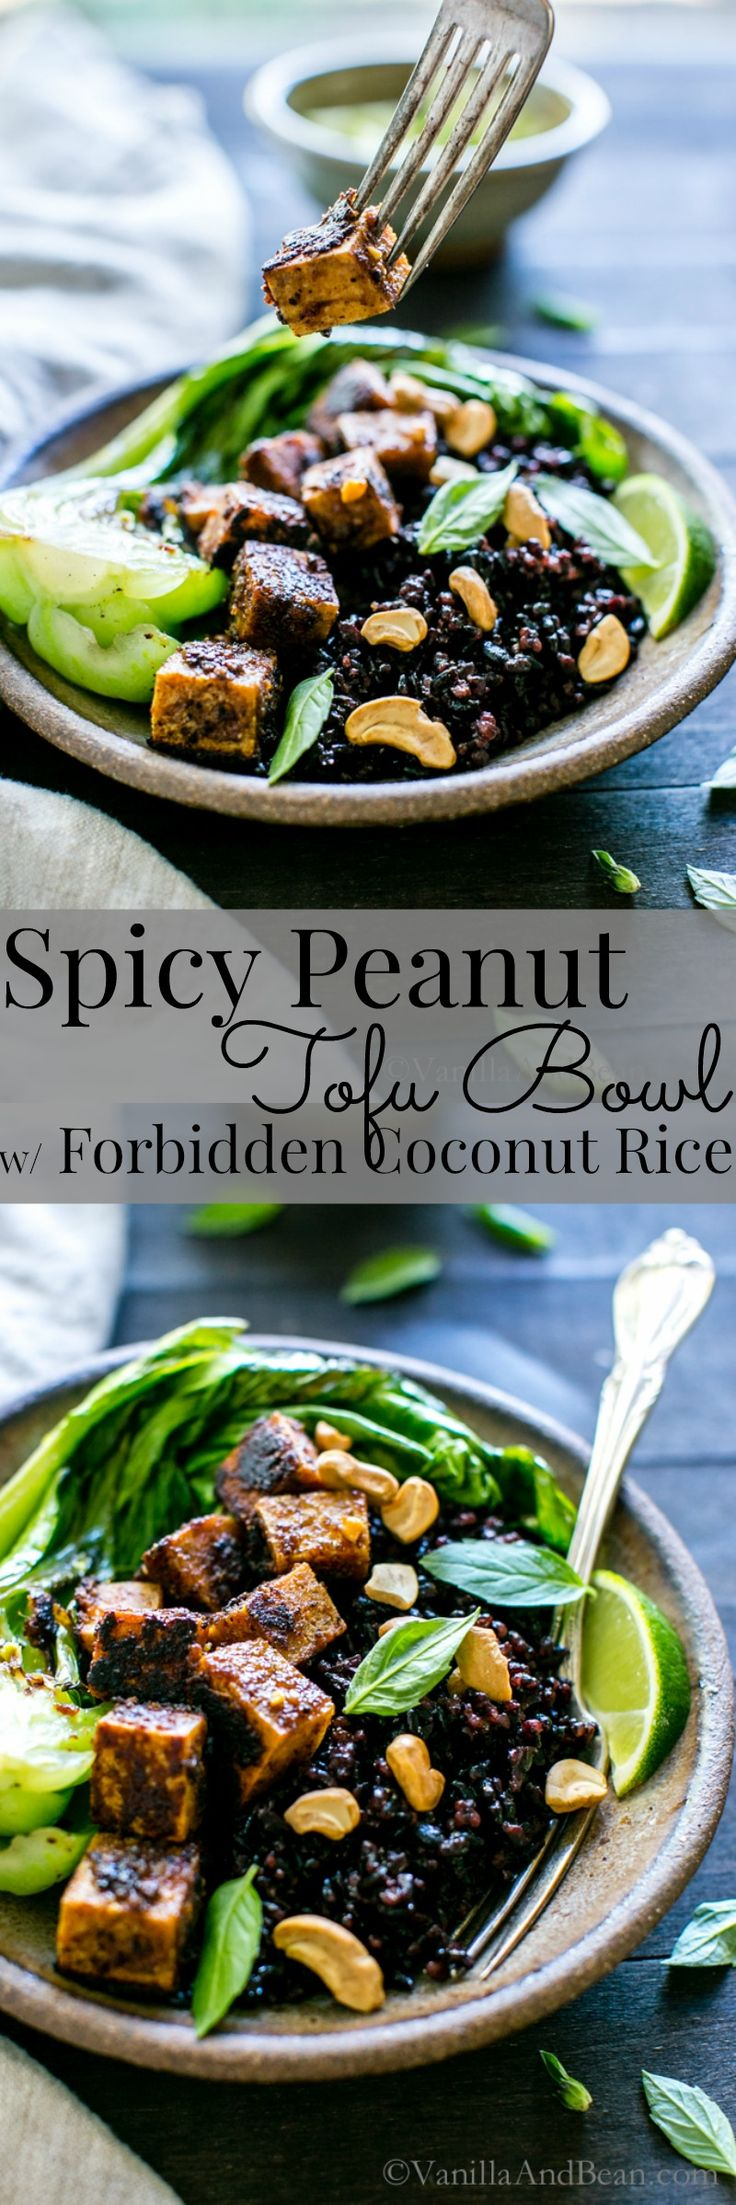 Thai-inspired flavors come together in this hearty and nourishing bowl. | Vegan + GF